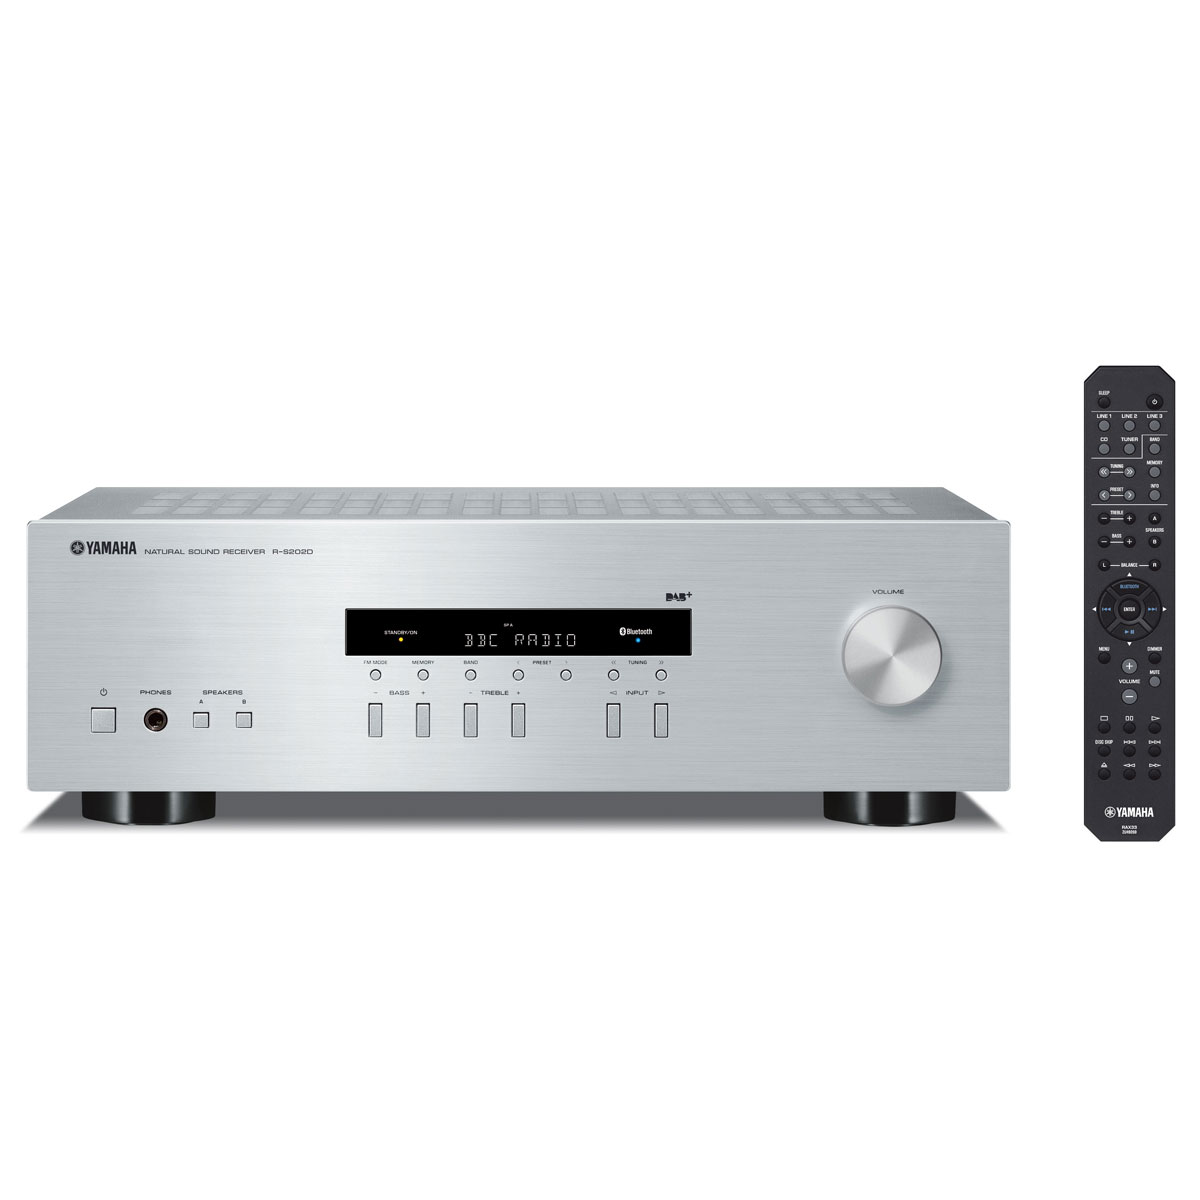 Yamaha R-S 202D silber Stereo-Receiver 45155